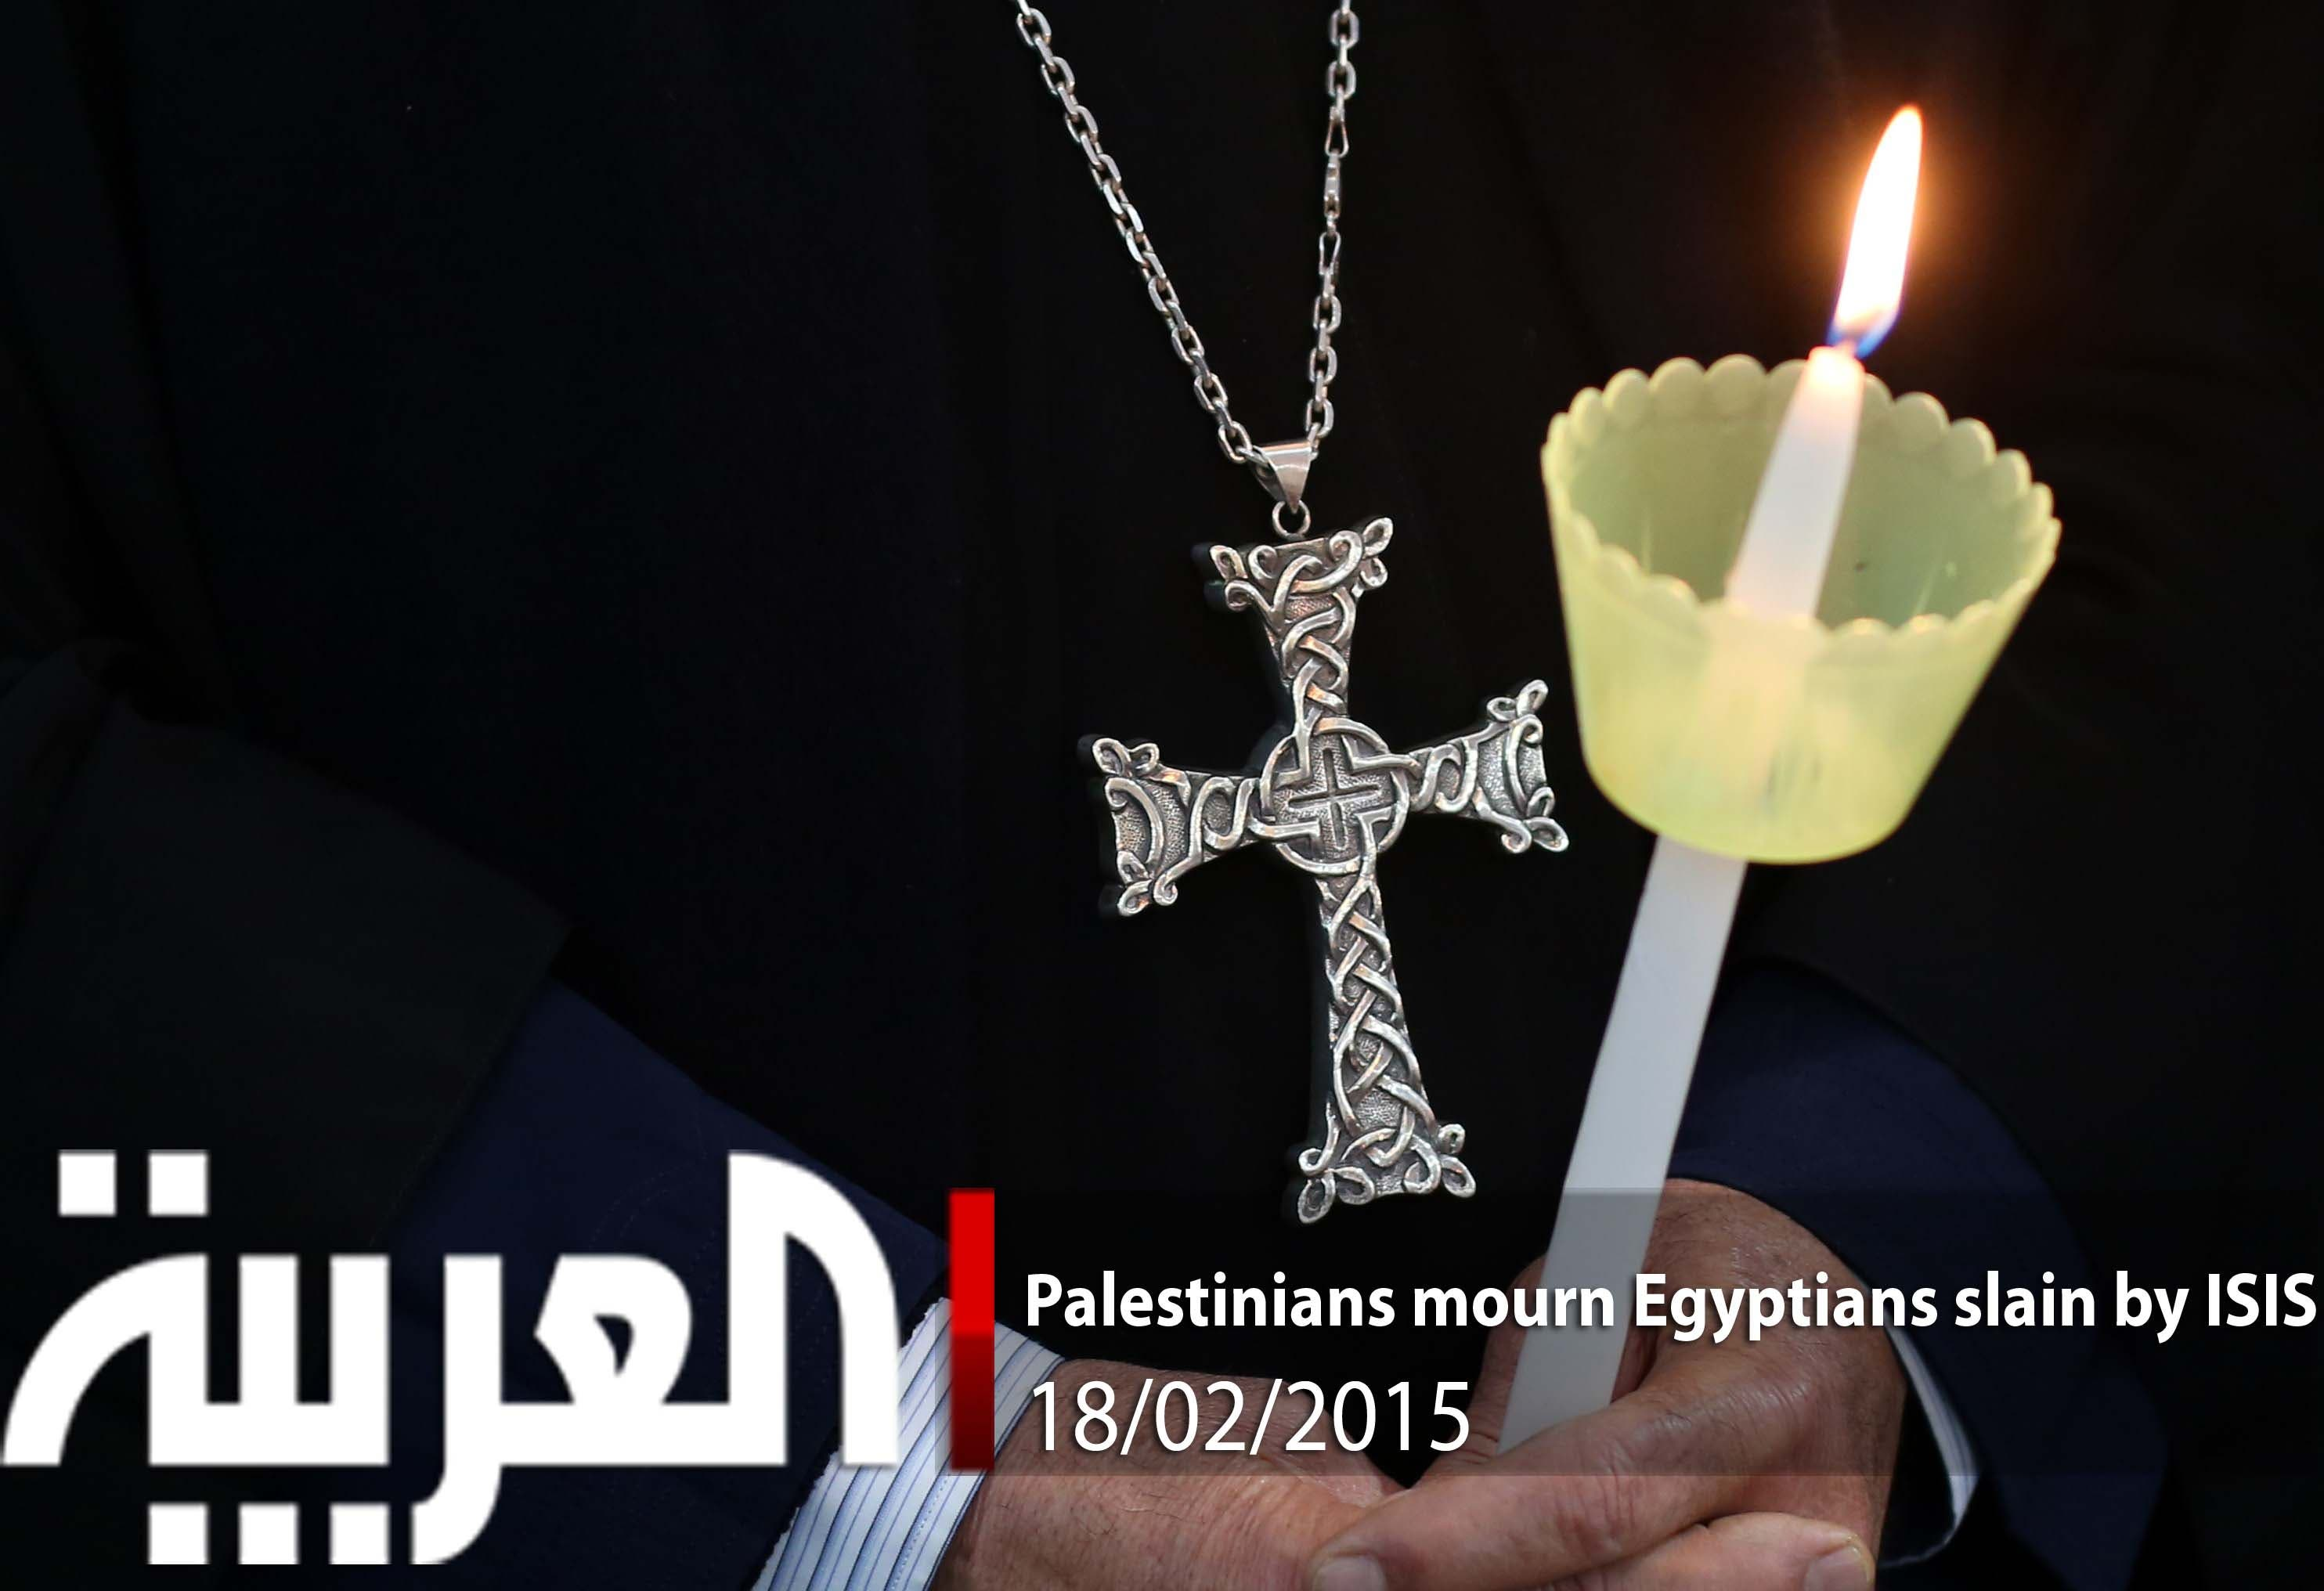 Palestinians mourn Egyptians slain by ISIS